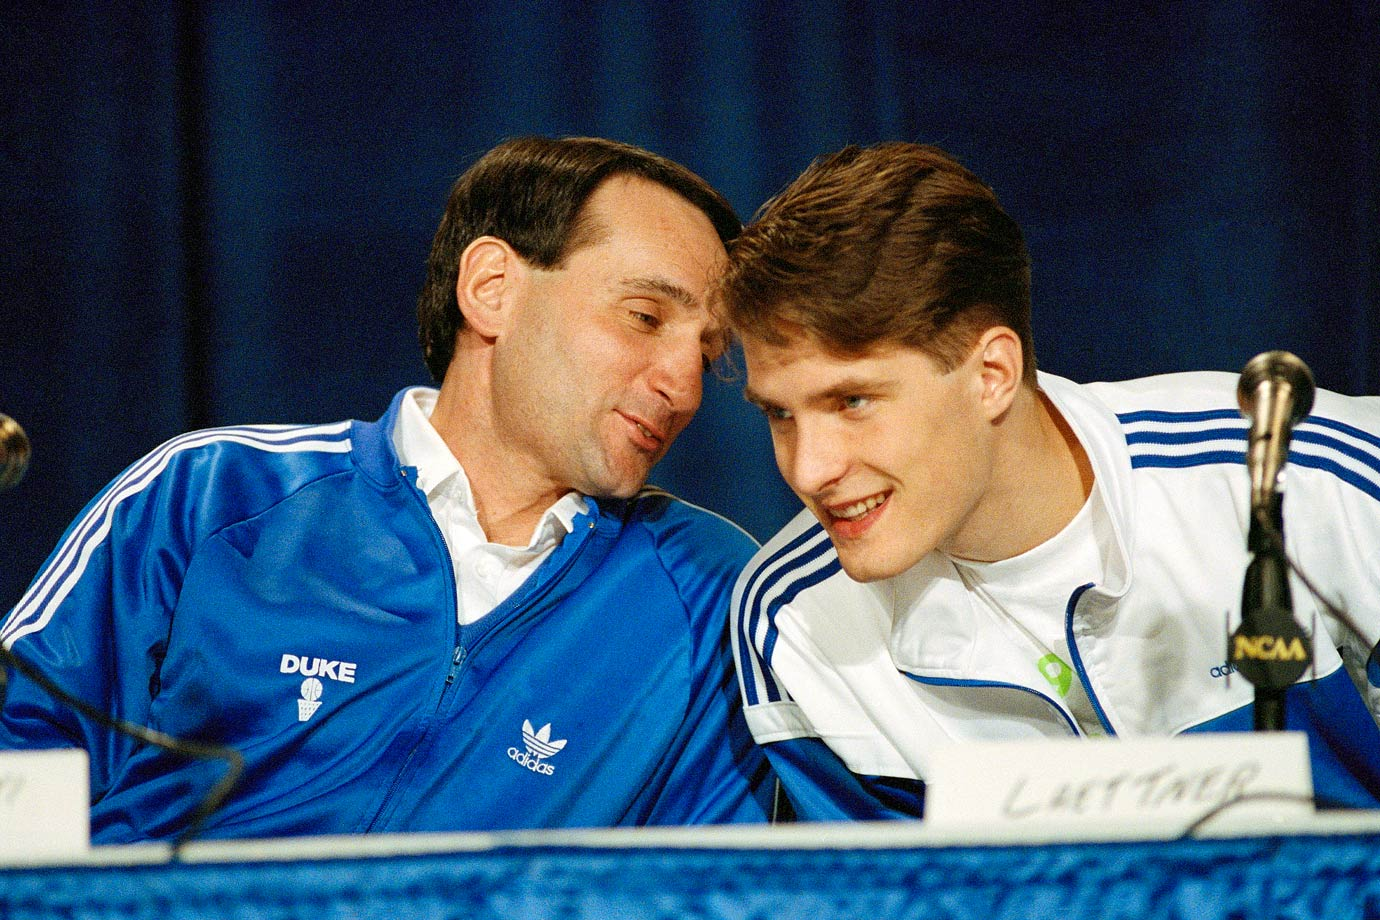 Mike Krzyzewski shares a light moment with Duke forward Christian Laettner during a 1990 news conference. Laettner, the only college player ever to start in four Final Fours, helped Krzyzewski win NCAA titles in 1991 and 1992.